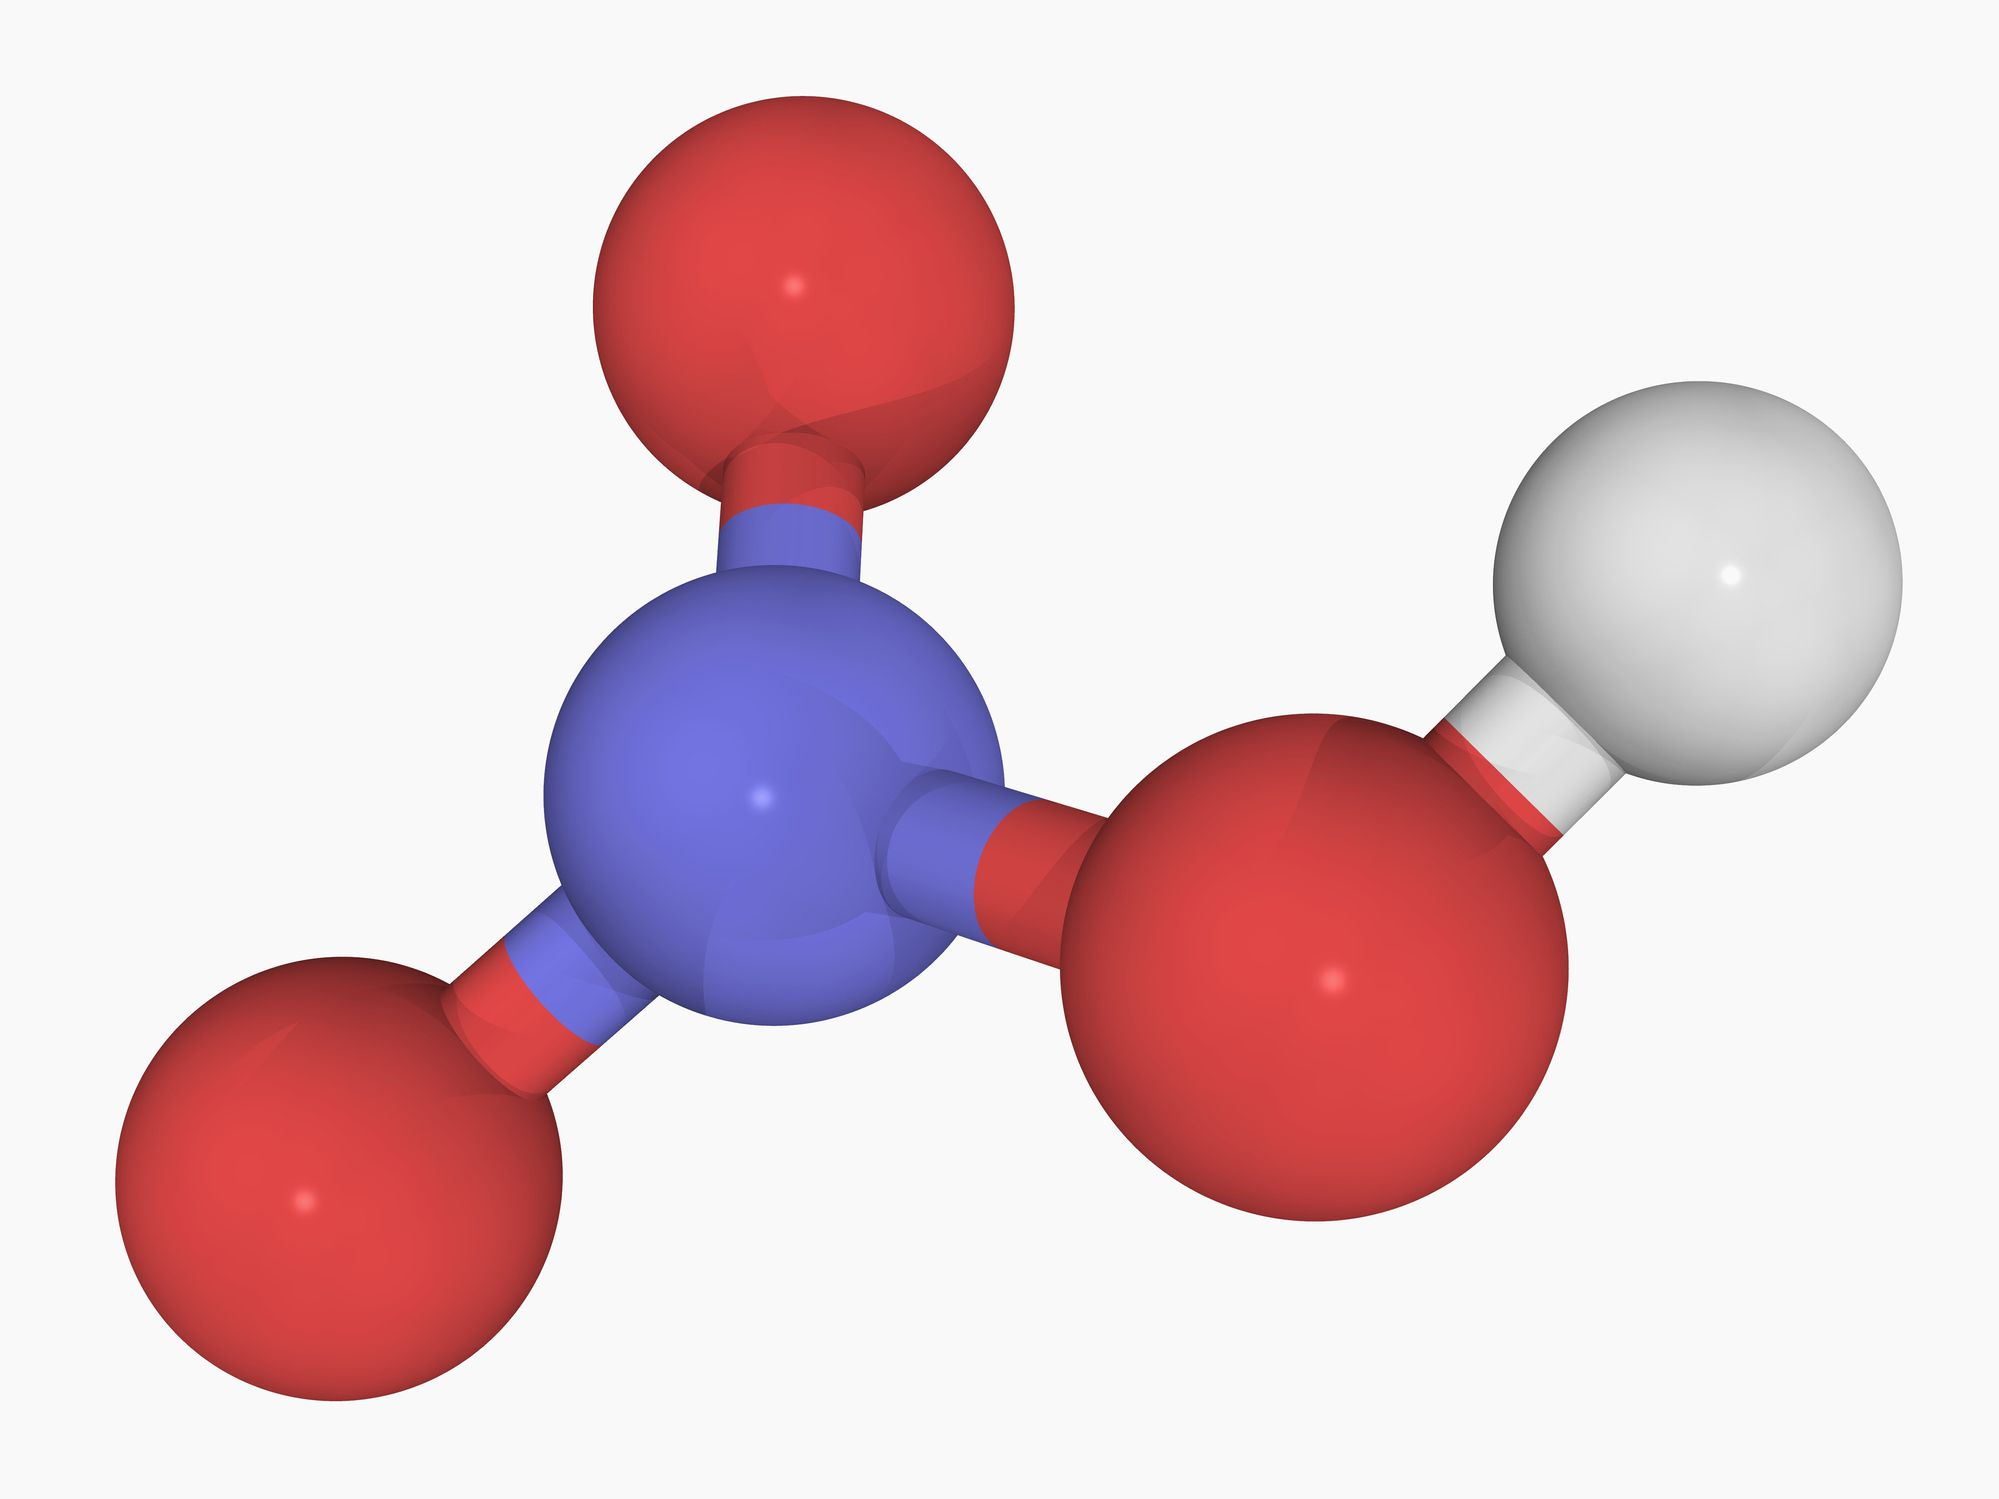 Nitric acid also is called aqua fortis or spirit of nitre.